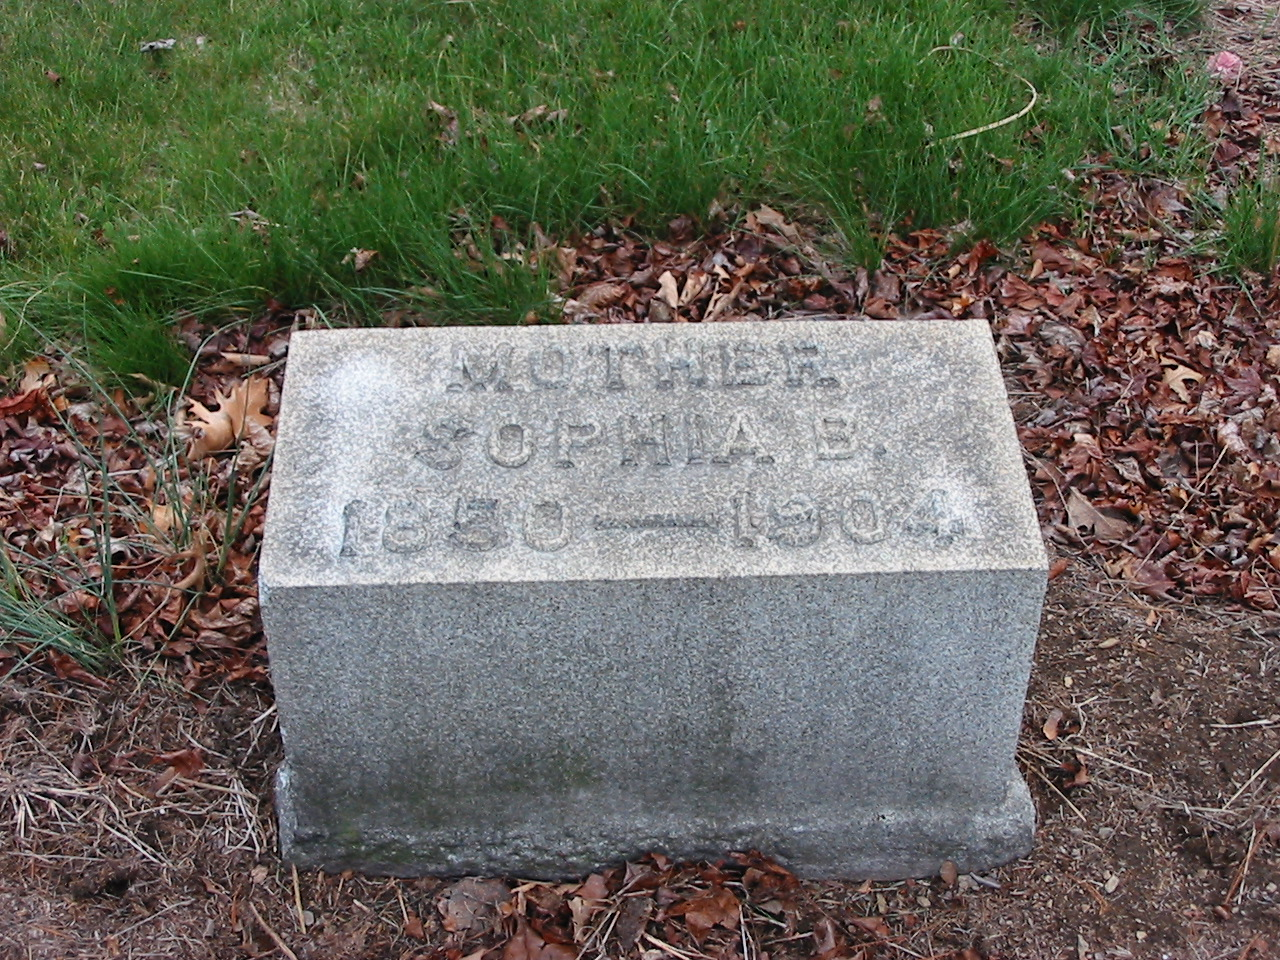 Sophia B. (Hepperly?) Hocker (1850-1904)